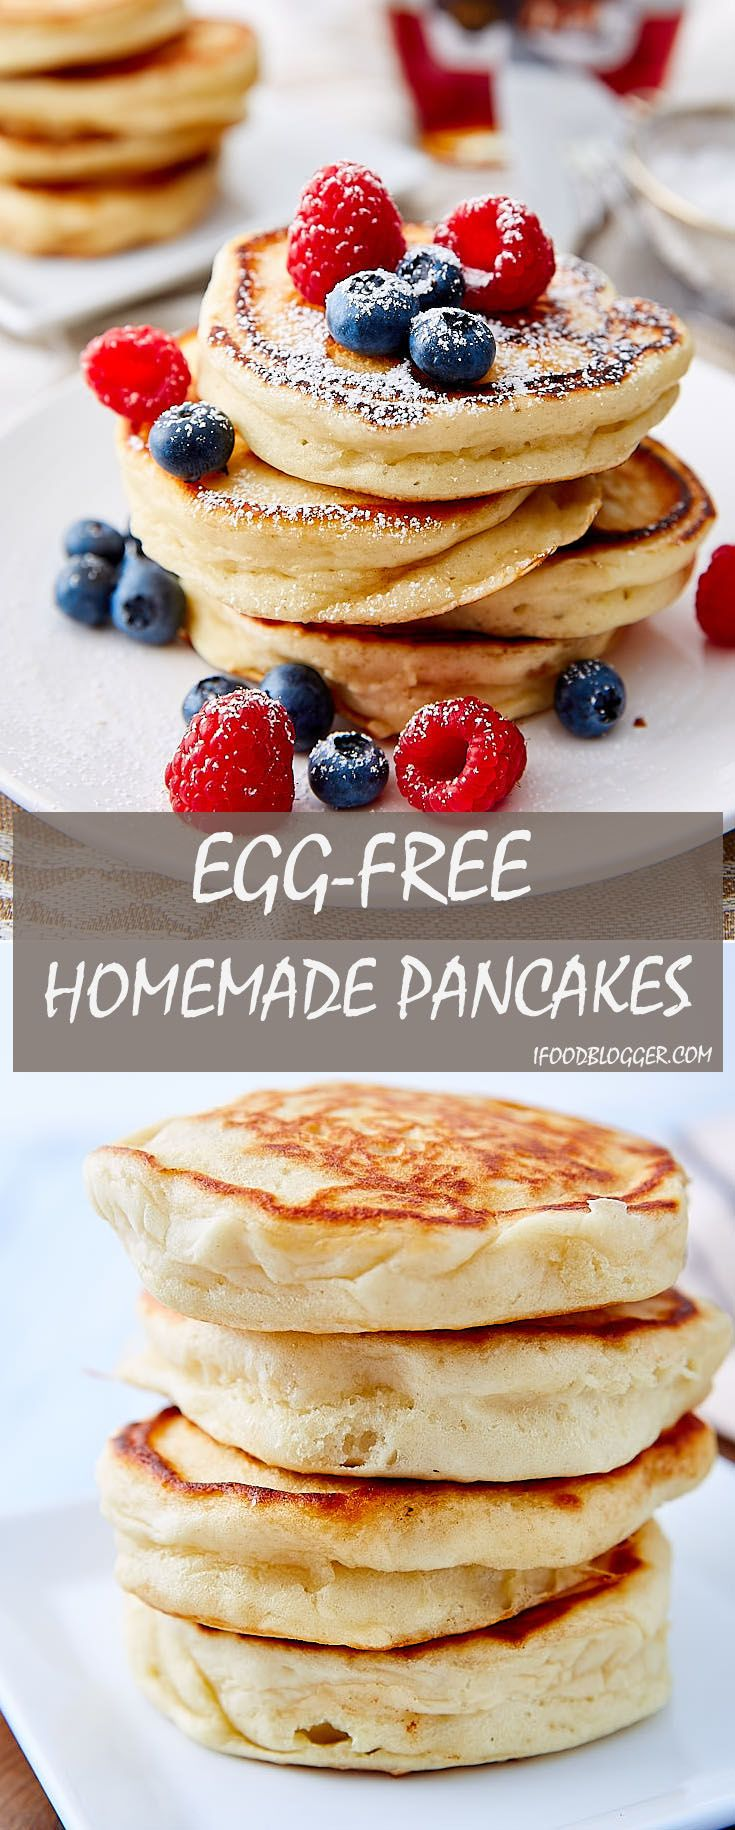 Five Ingredient Super Easy Homemade Pancakes Without Eggs Fluffy And Airy Texture No Eggs Required In This Pa Panqueques Caseros Comida Panqueques Sin Huevo